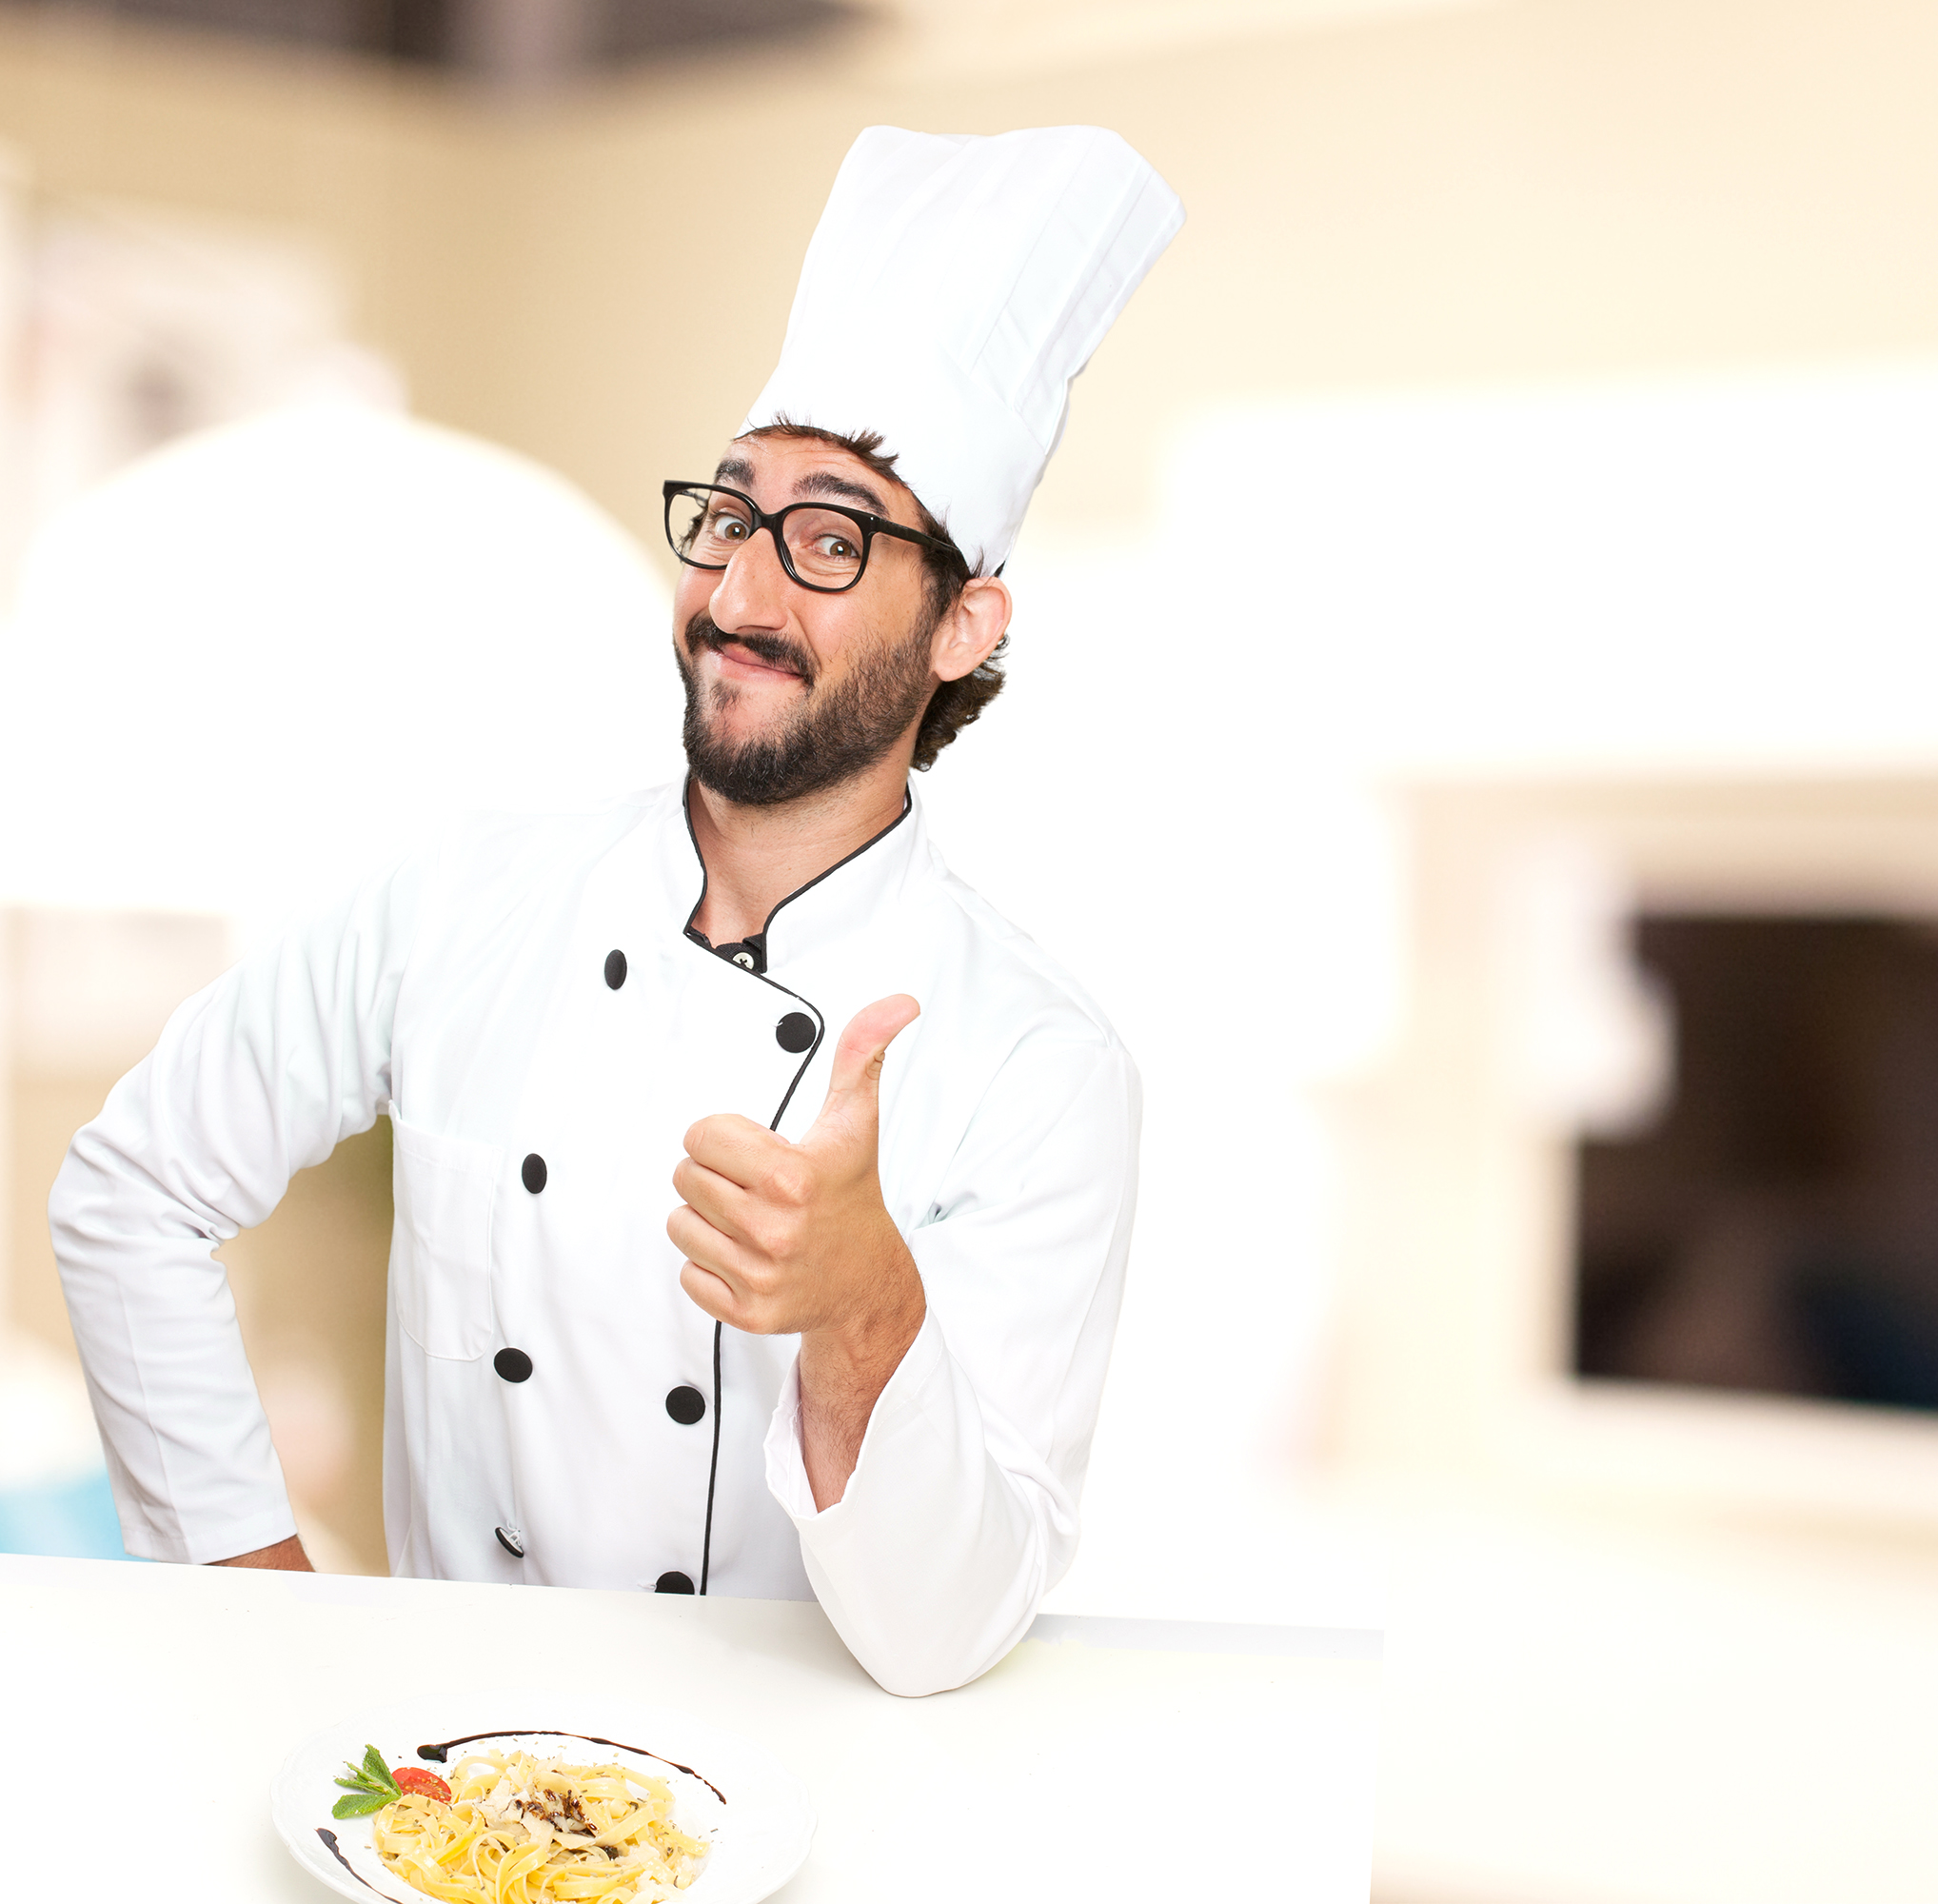 cook man okay sign with pasta